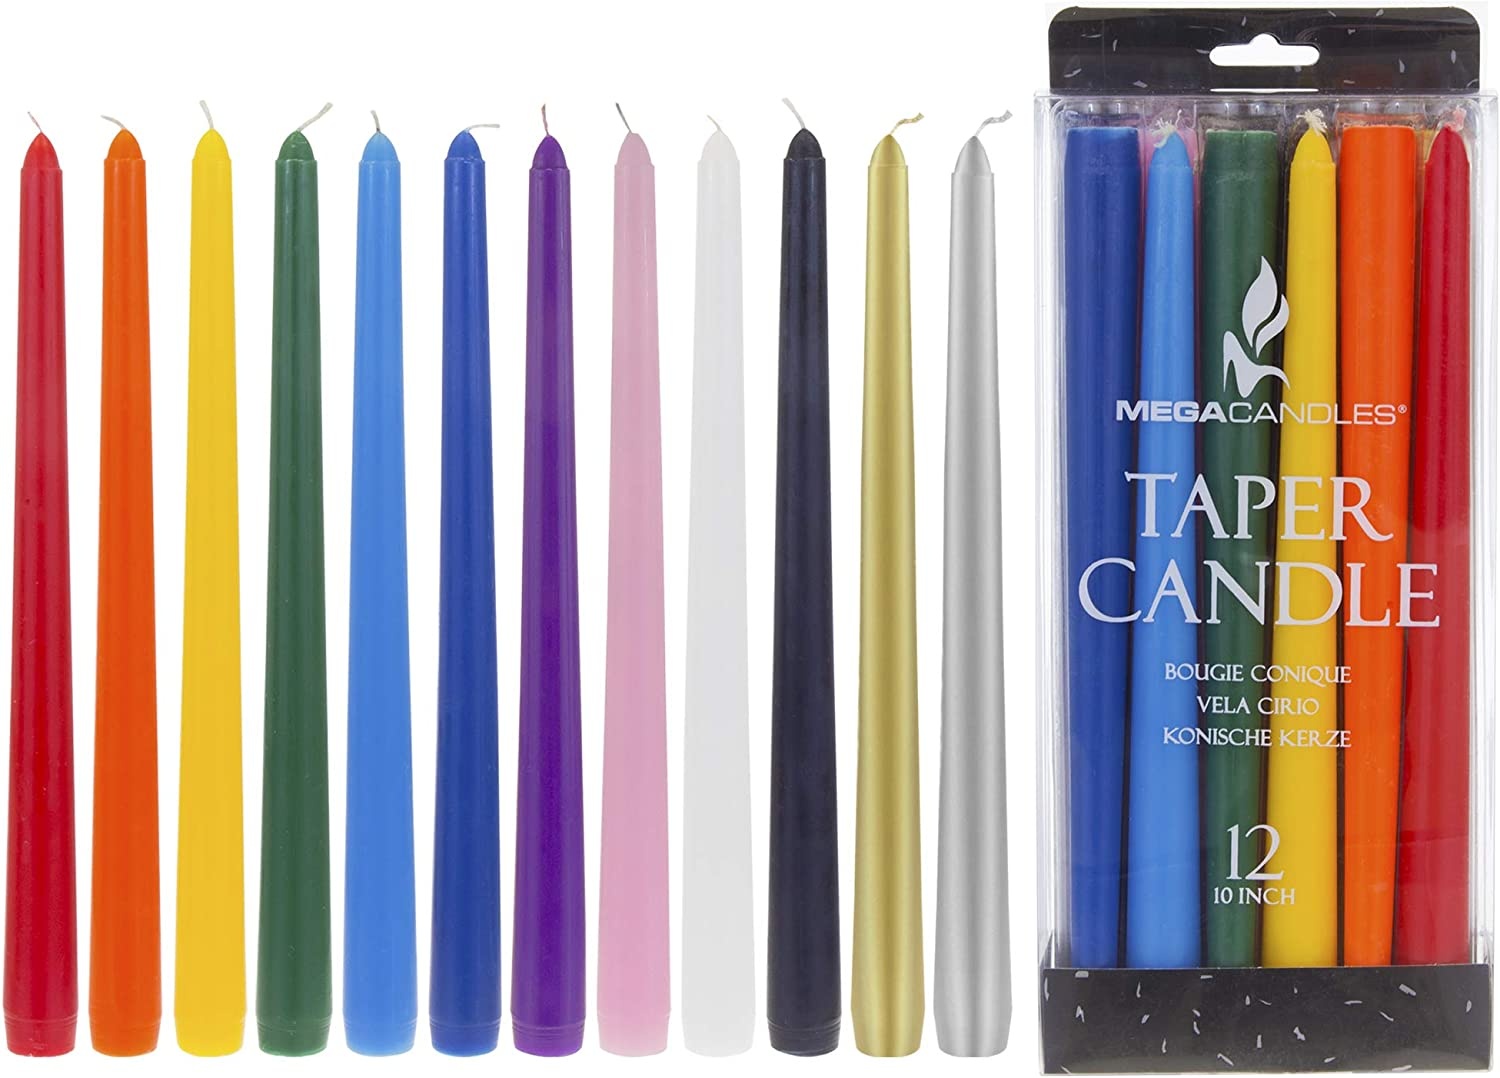 Rituals Mega Candles 40 pcs Unscented Black Mini Taper Candle 4 Tall x 1//2 Diameter Wax Play /& More Spells Great for Casting Chimes